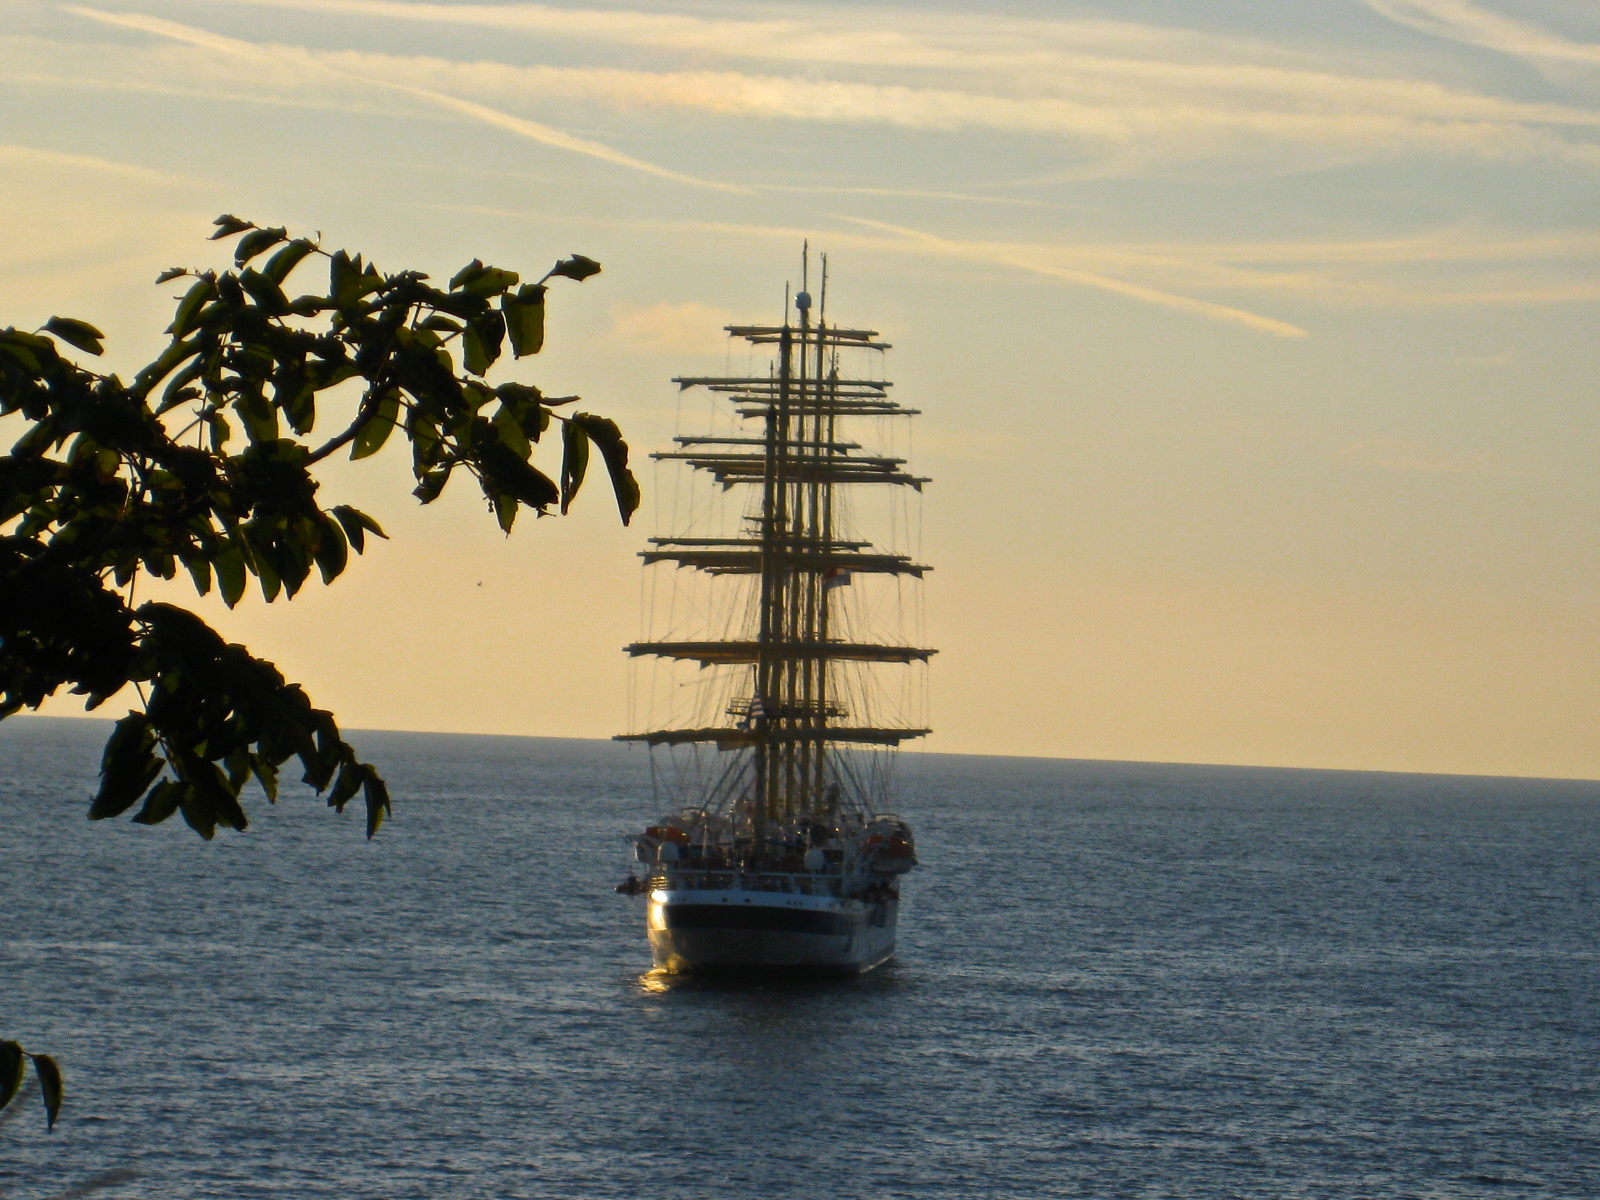 ship in Adriatic Sea off Rovinj, Croatia